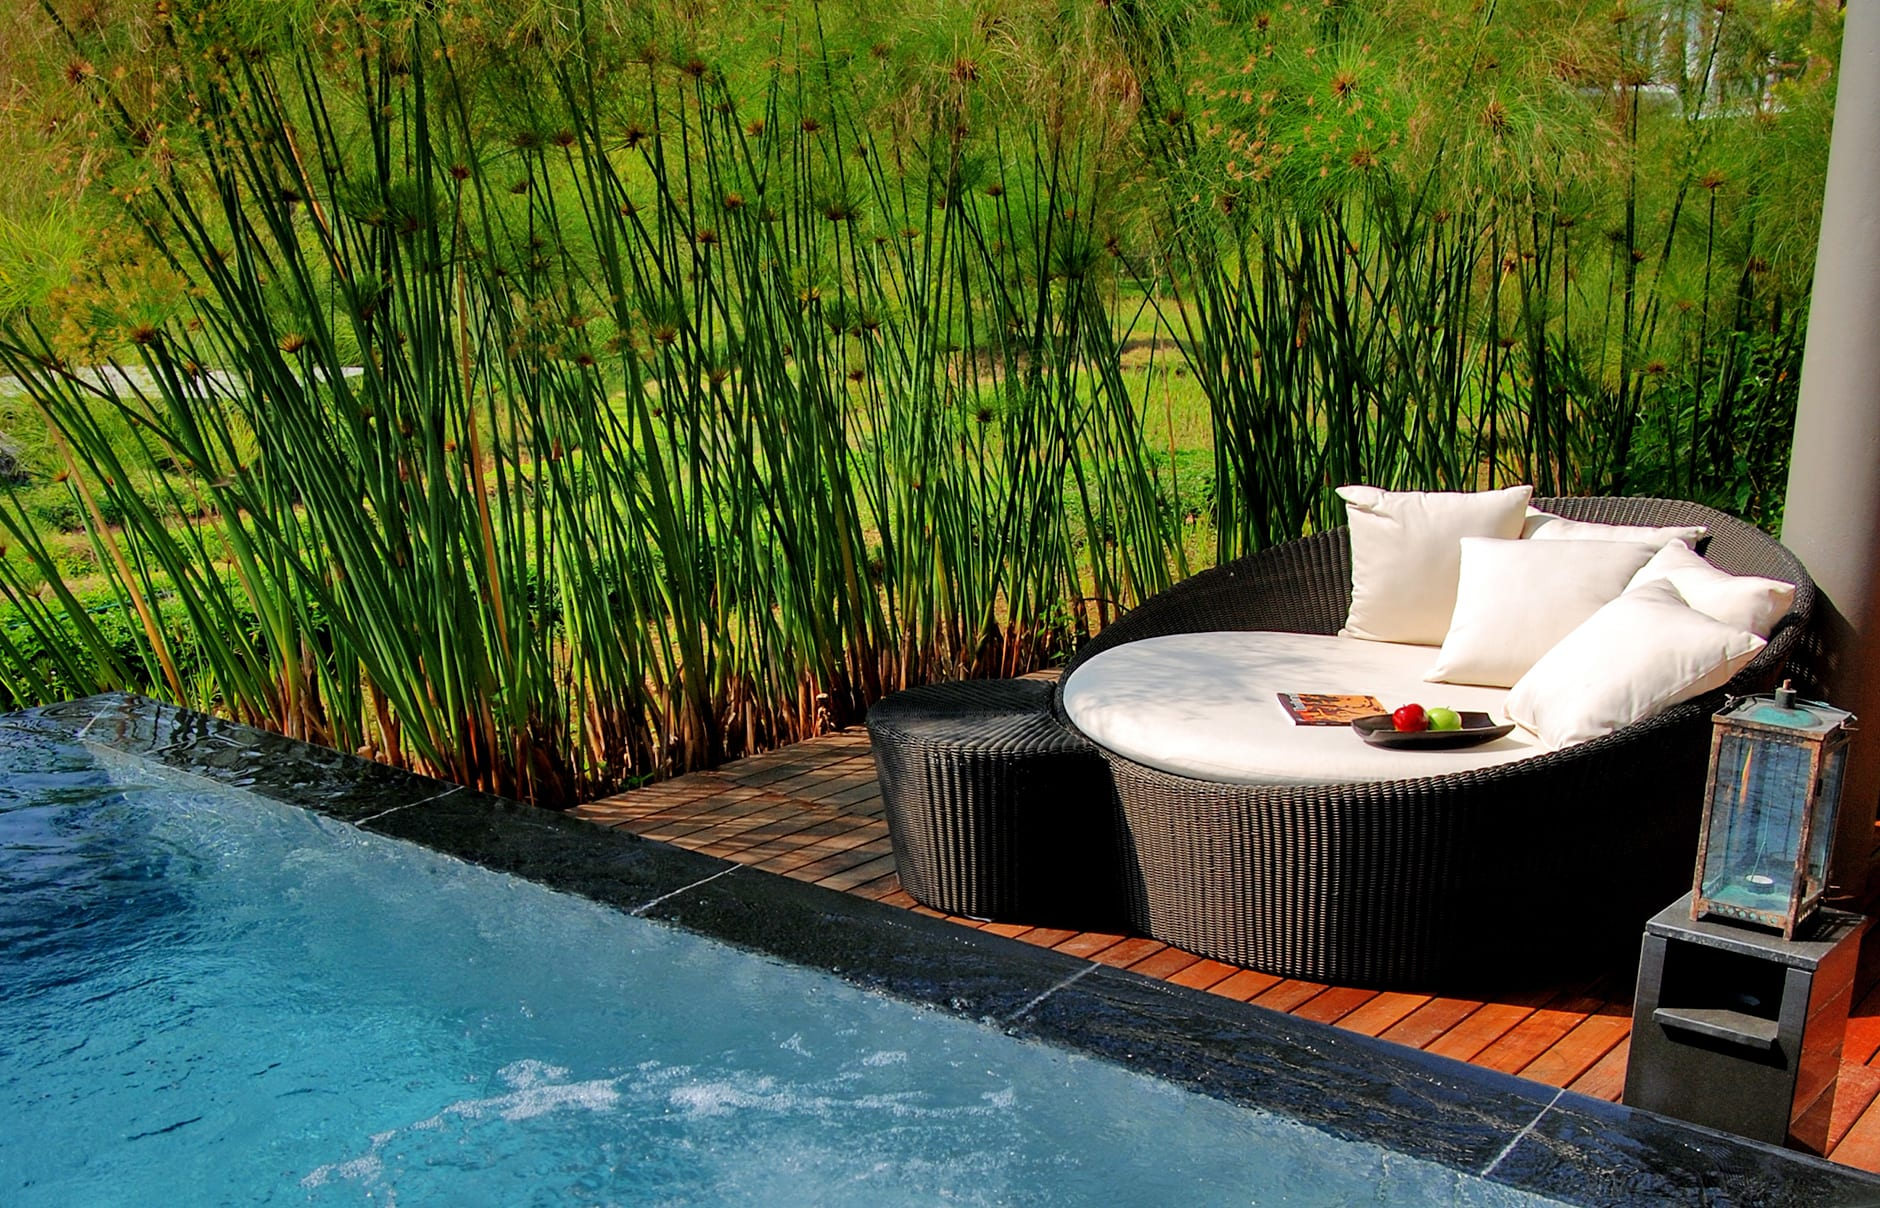 Veranda High Resort Chiang Mai, Thailand. Hotel Review by TravelPlusStyle. Photo © AccorHotels